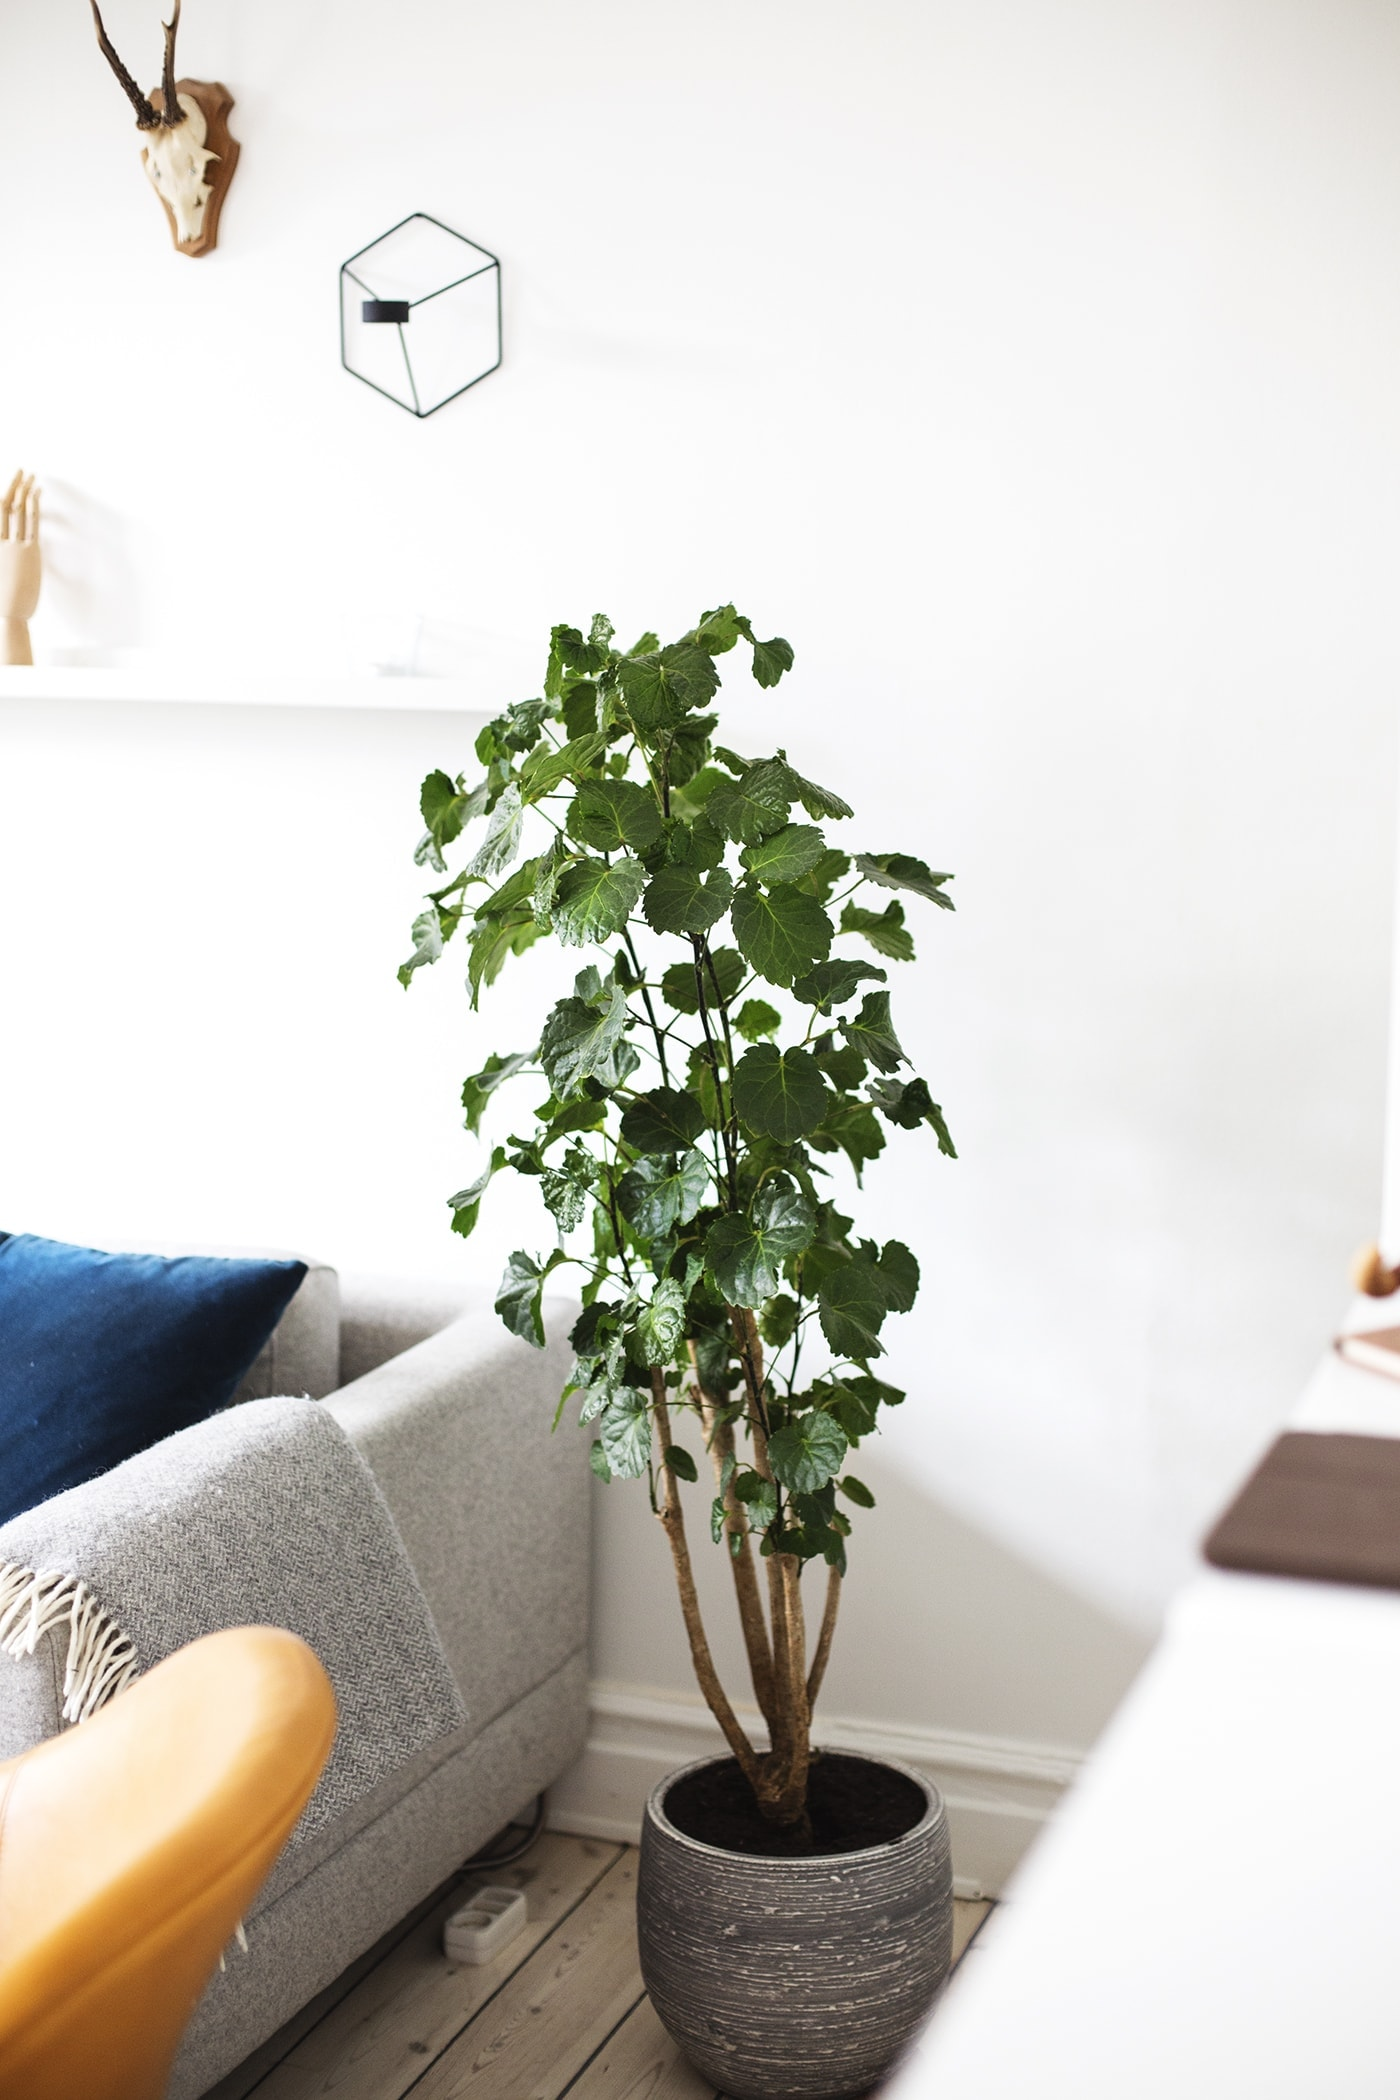 Copenhagen | wanderlust | air bnb living room 5